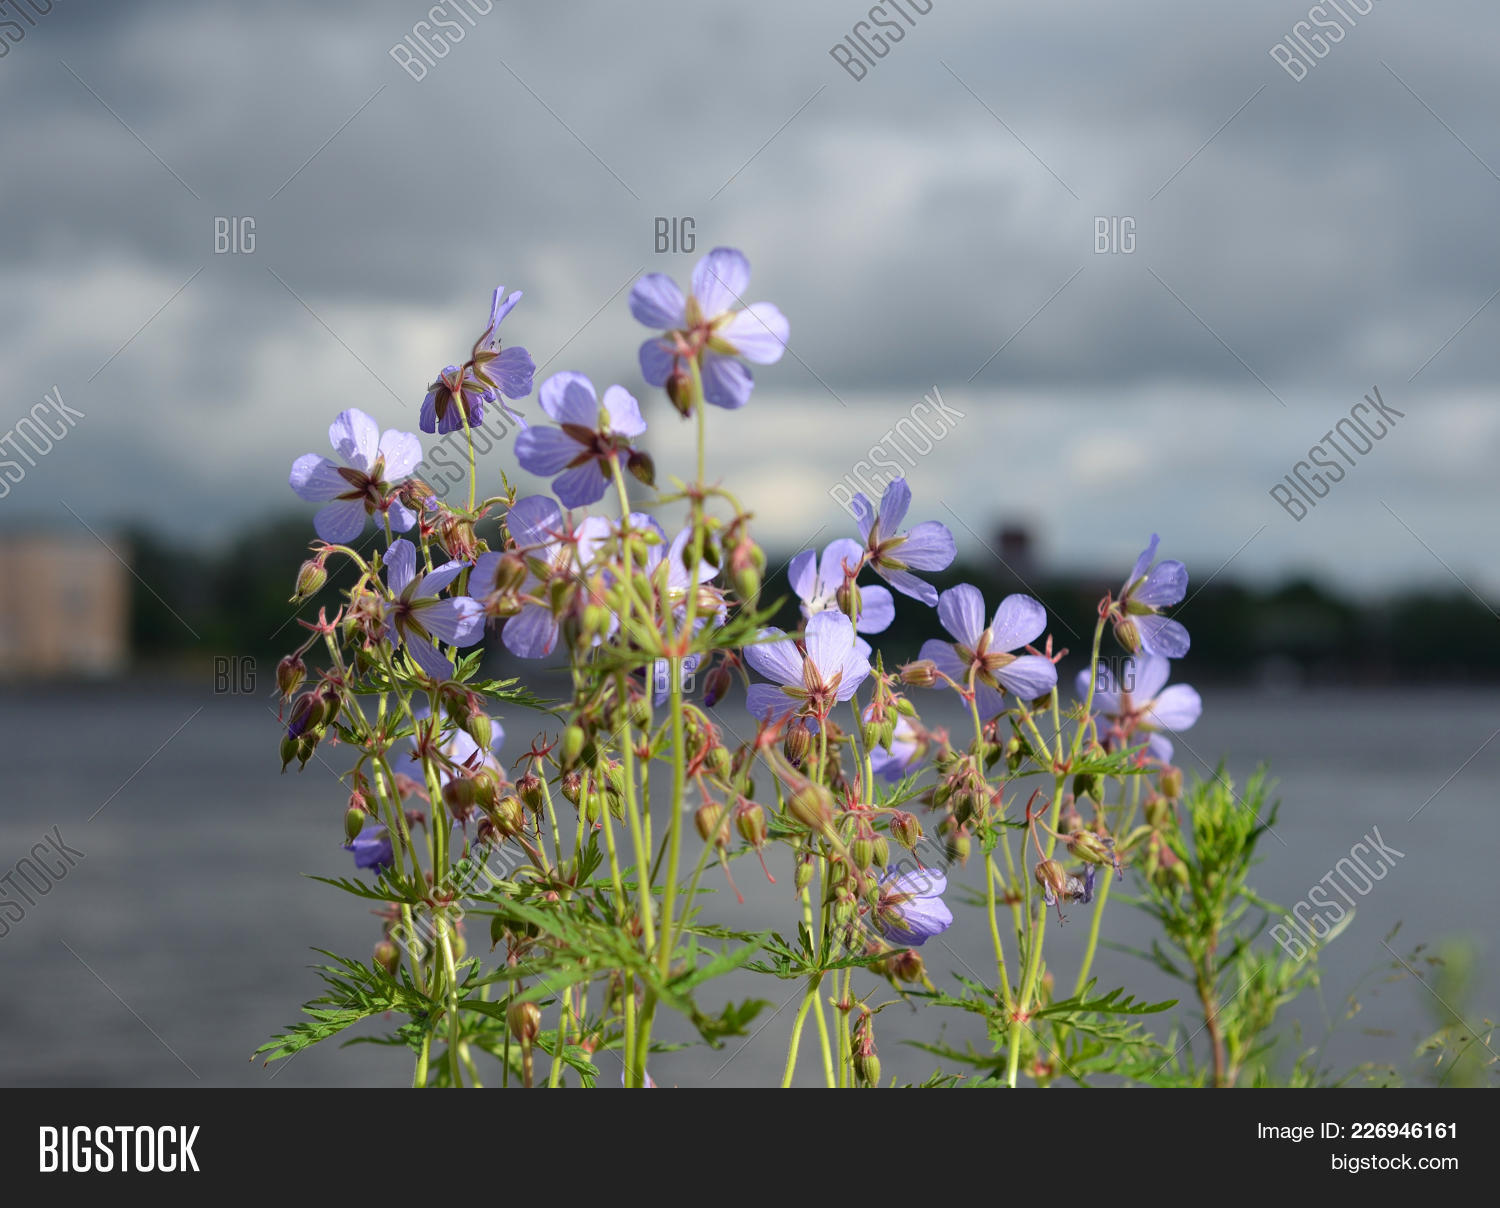 Bushes with violet PowerPoint Template - Bushes with violet ...